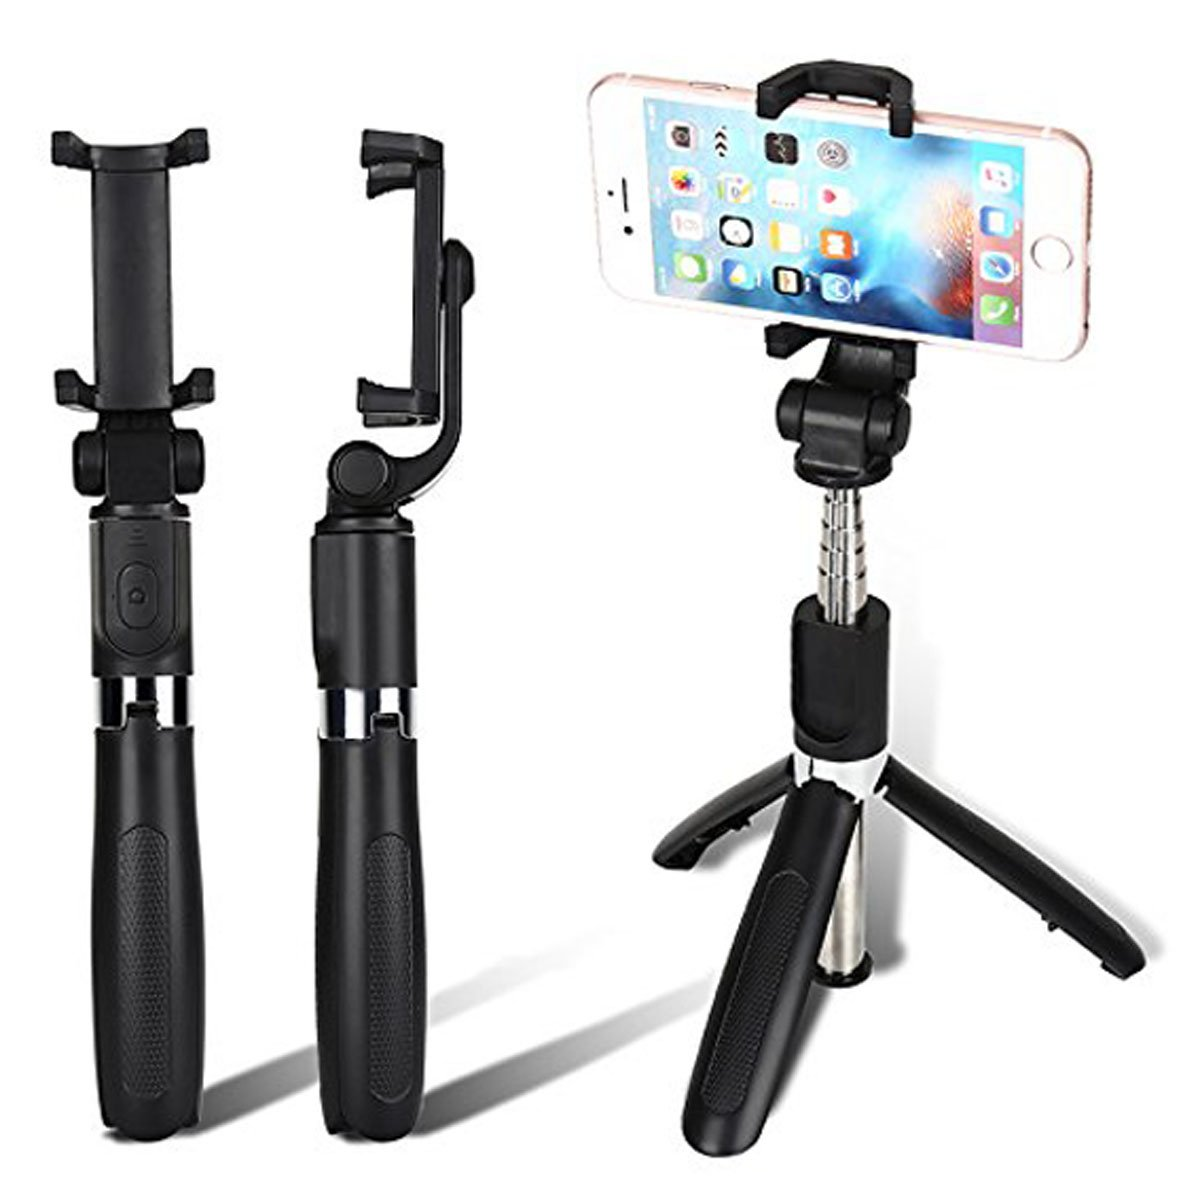 BelinlaAny Bluetooth Selfie Stick Tripod Extendable for iPhone X/iPhone 8/8 Plus/iPhone 7/iPhone 7 Plus/Huawei/Samsung/S9/S9 Plus/Note 8/S8/S8 Plus/More(Black) (black)